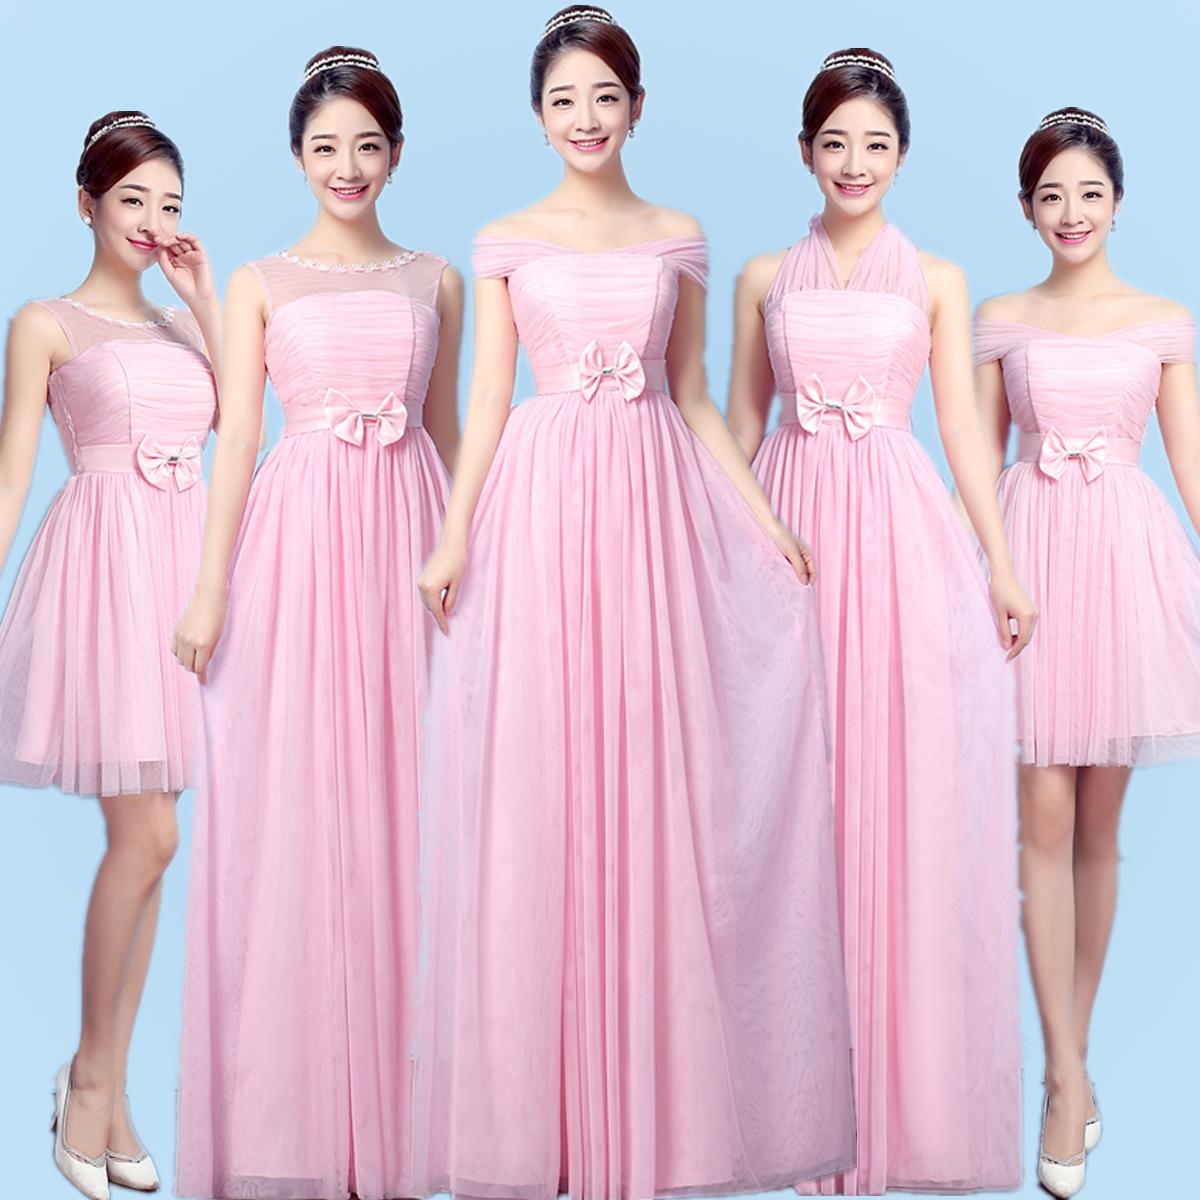 Cheap 2017 long bridesmaid dresses off shoulder fashion womens cheap 2017 long bridesmaid dresses off shoulder fashion womens tulle elegant maid of honor wedding party dress under 50 2017 country cheap bridesmaid ombrellifo Image collections